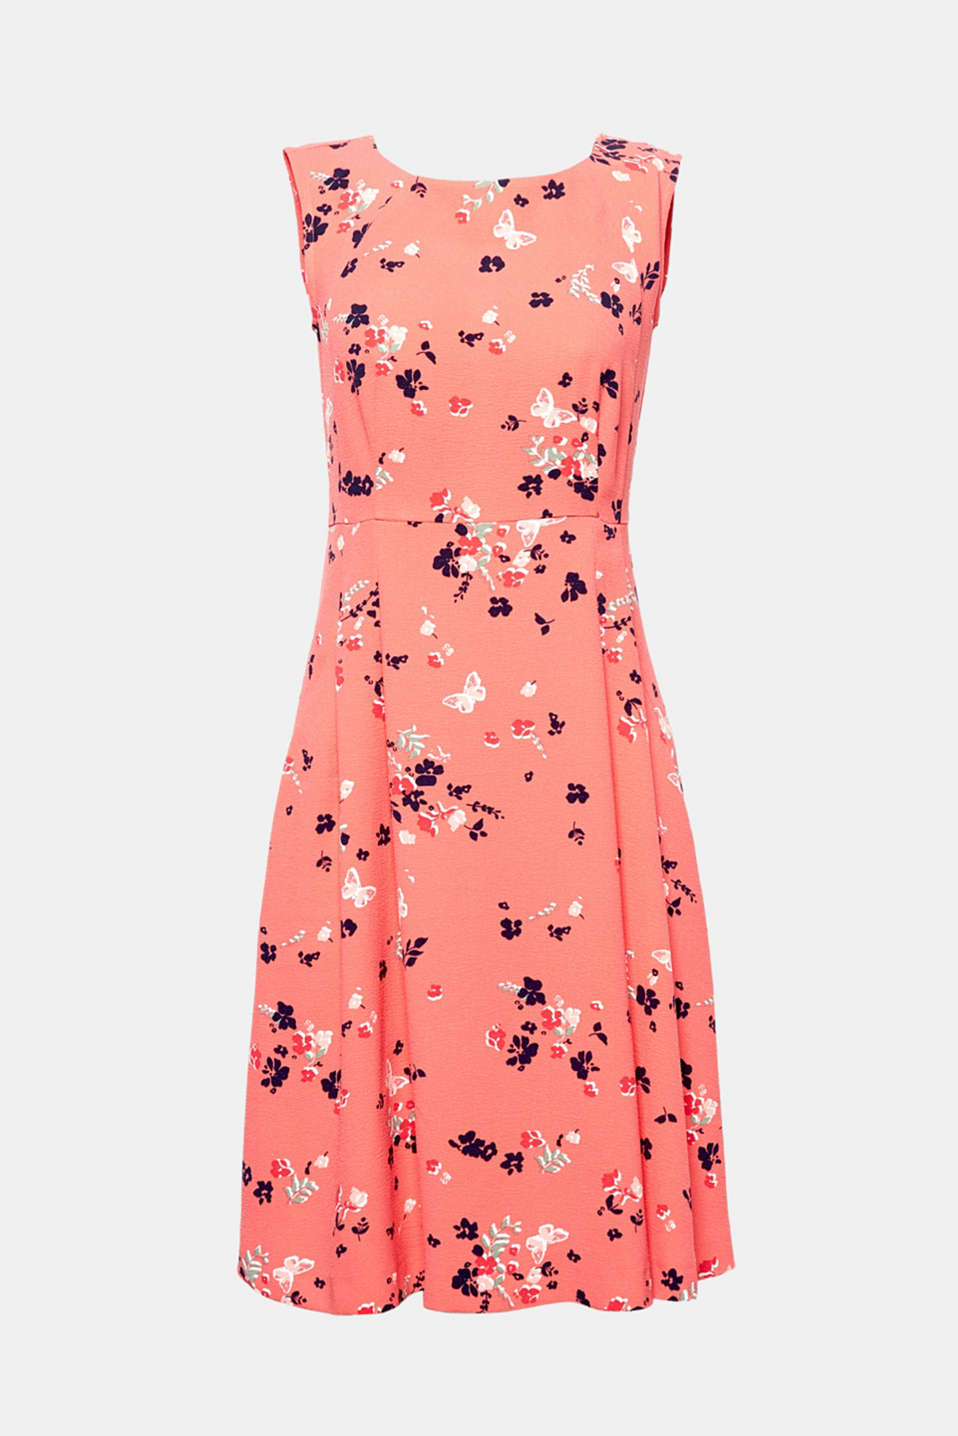 Let spring into your wardrobe with this floral dress in a swinging A-line.